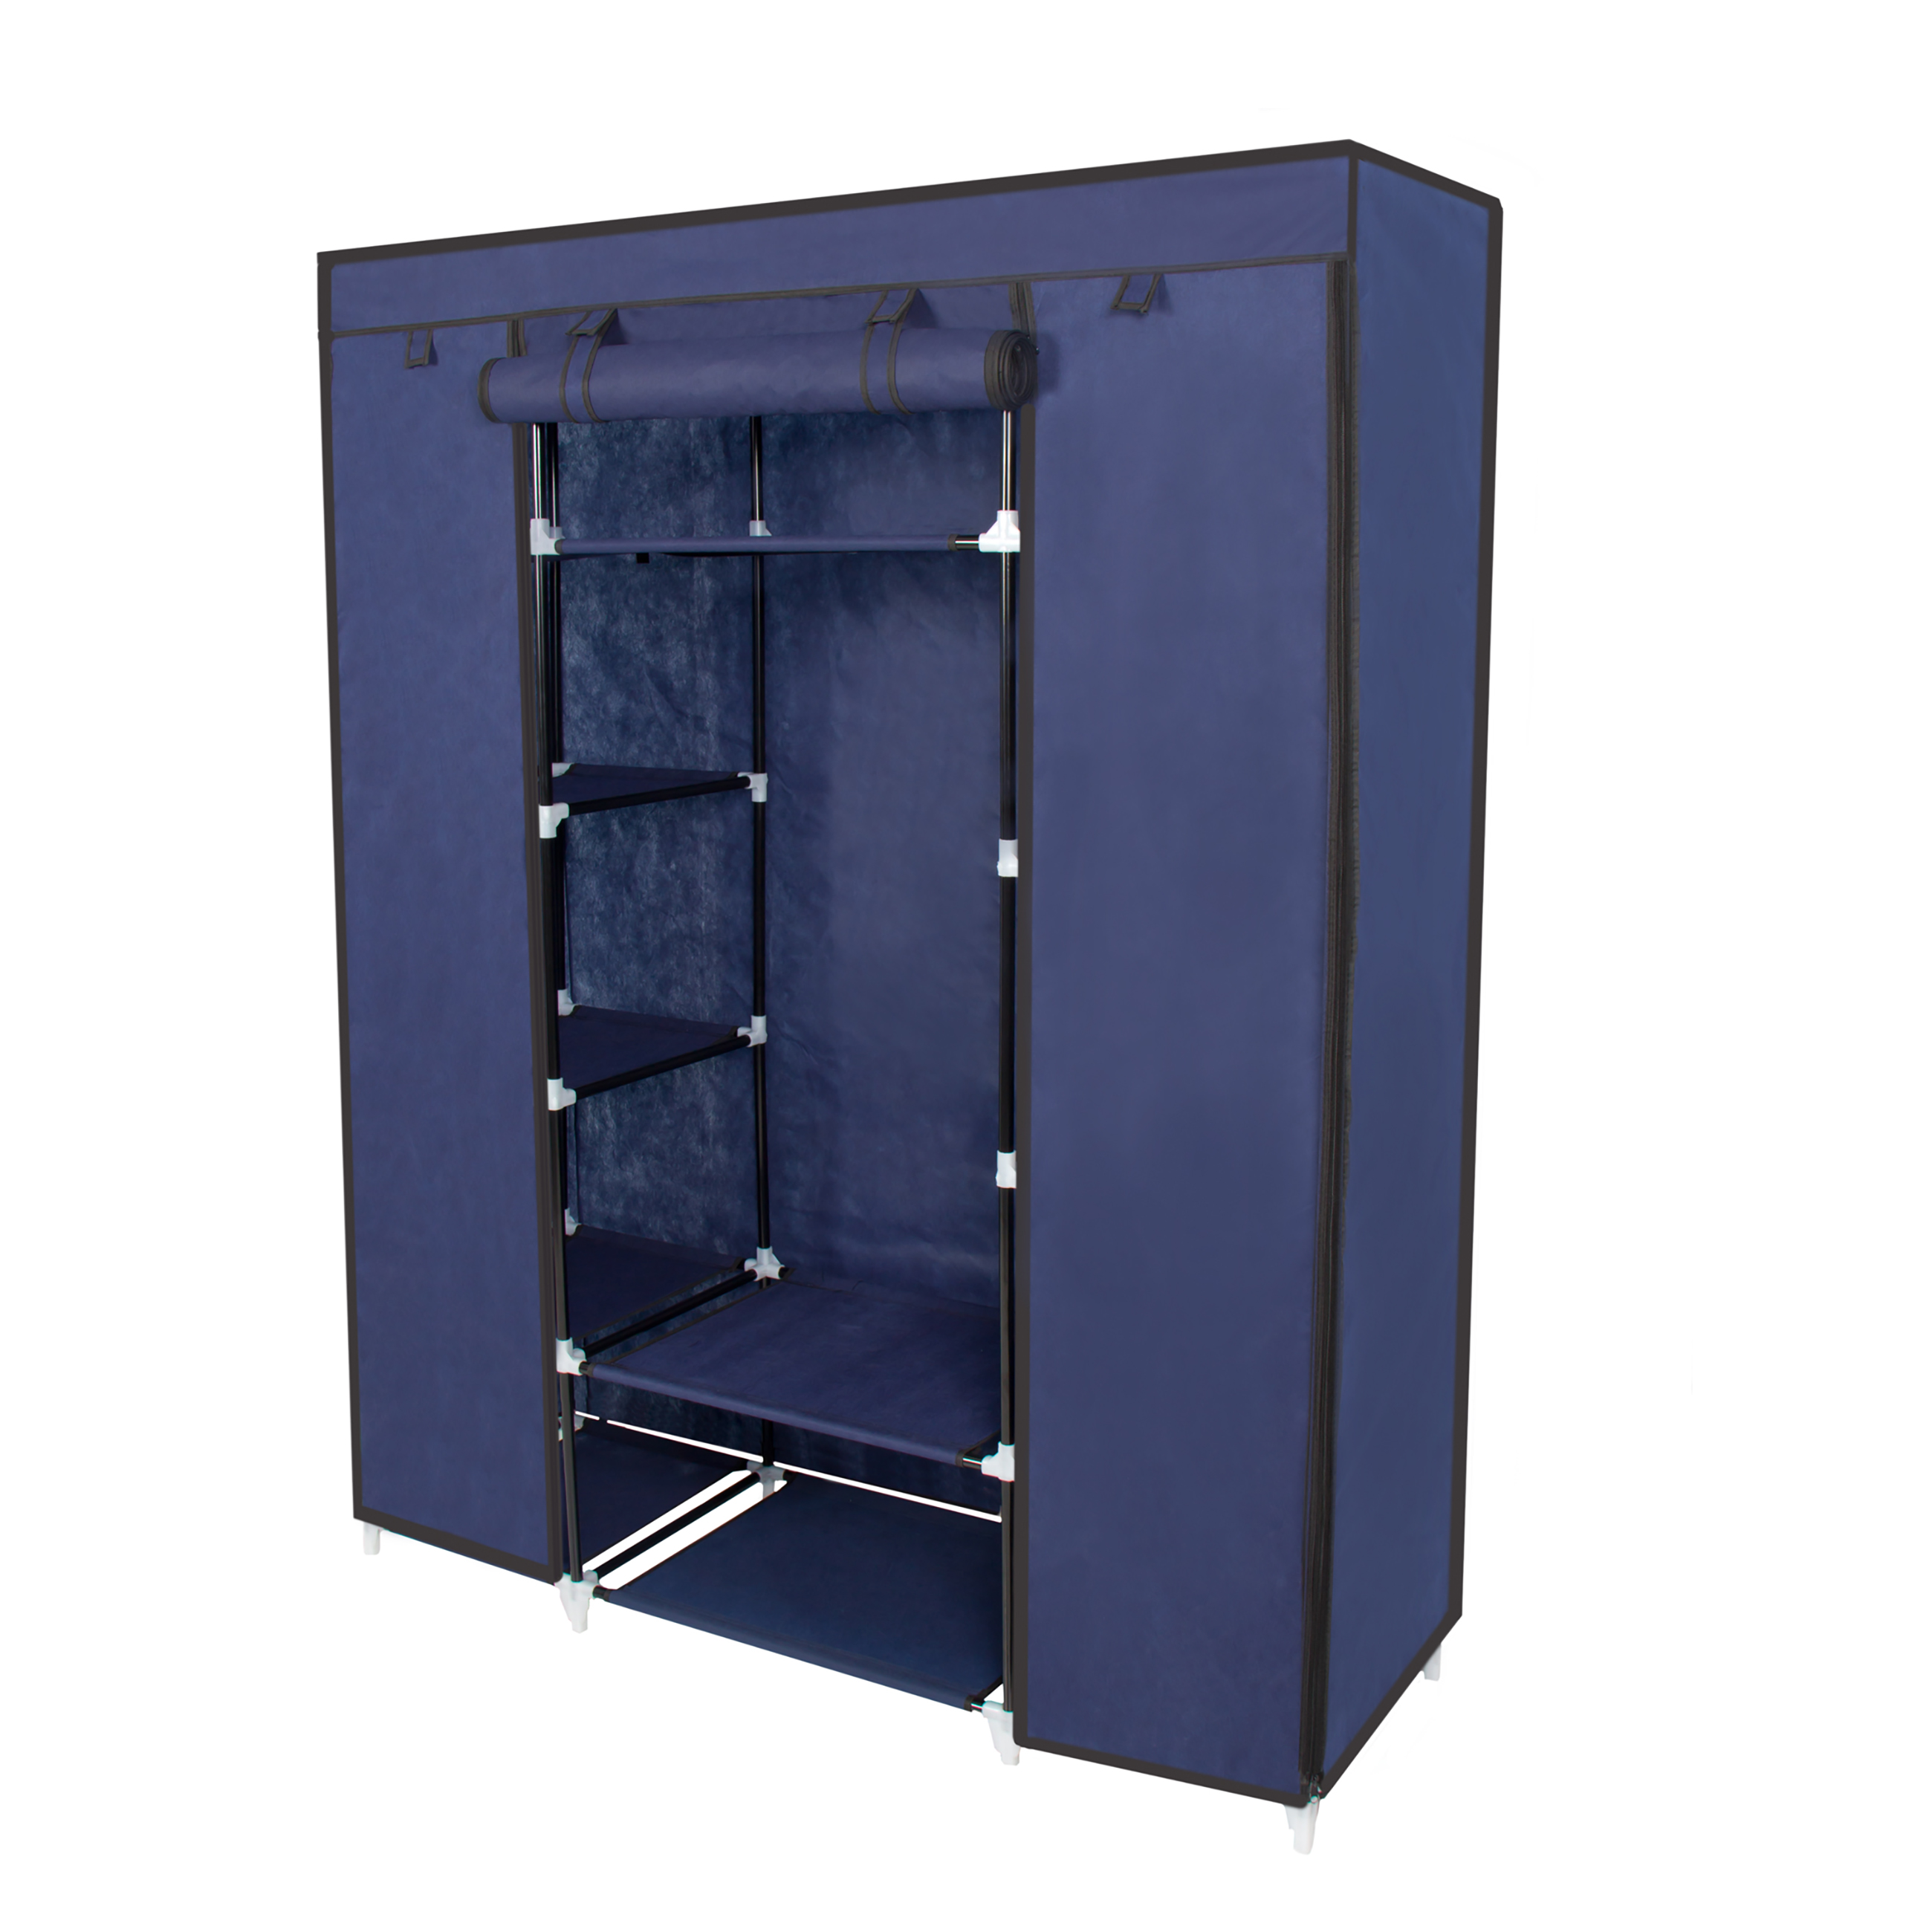 Espresso Wardrobe Closet | Cheap Wardrobe Closet | Bedroom Armoires Wardrobes